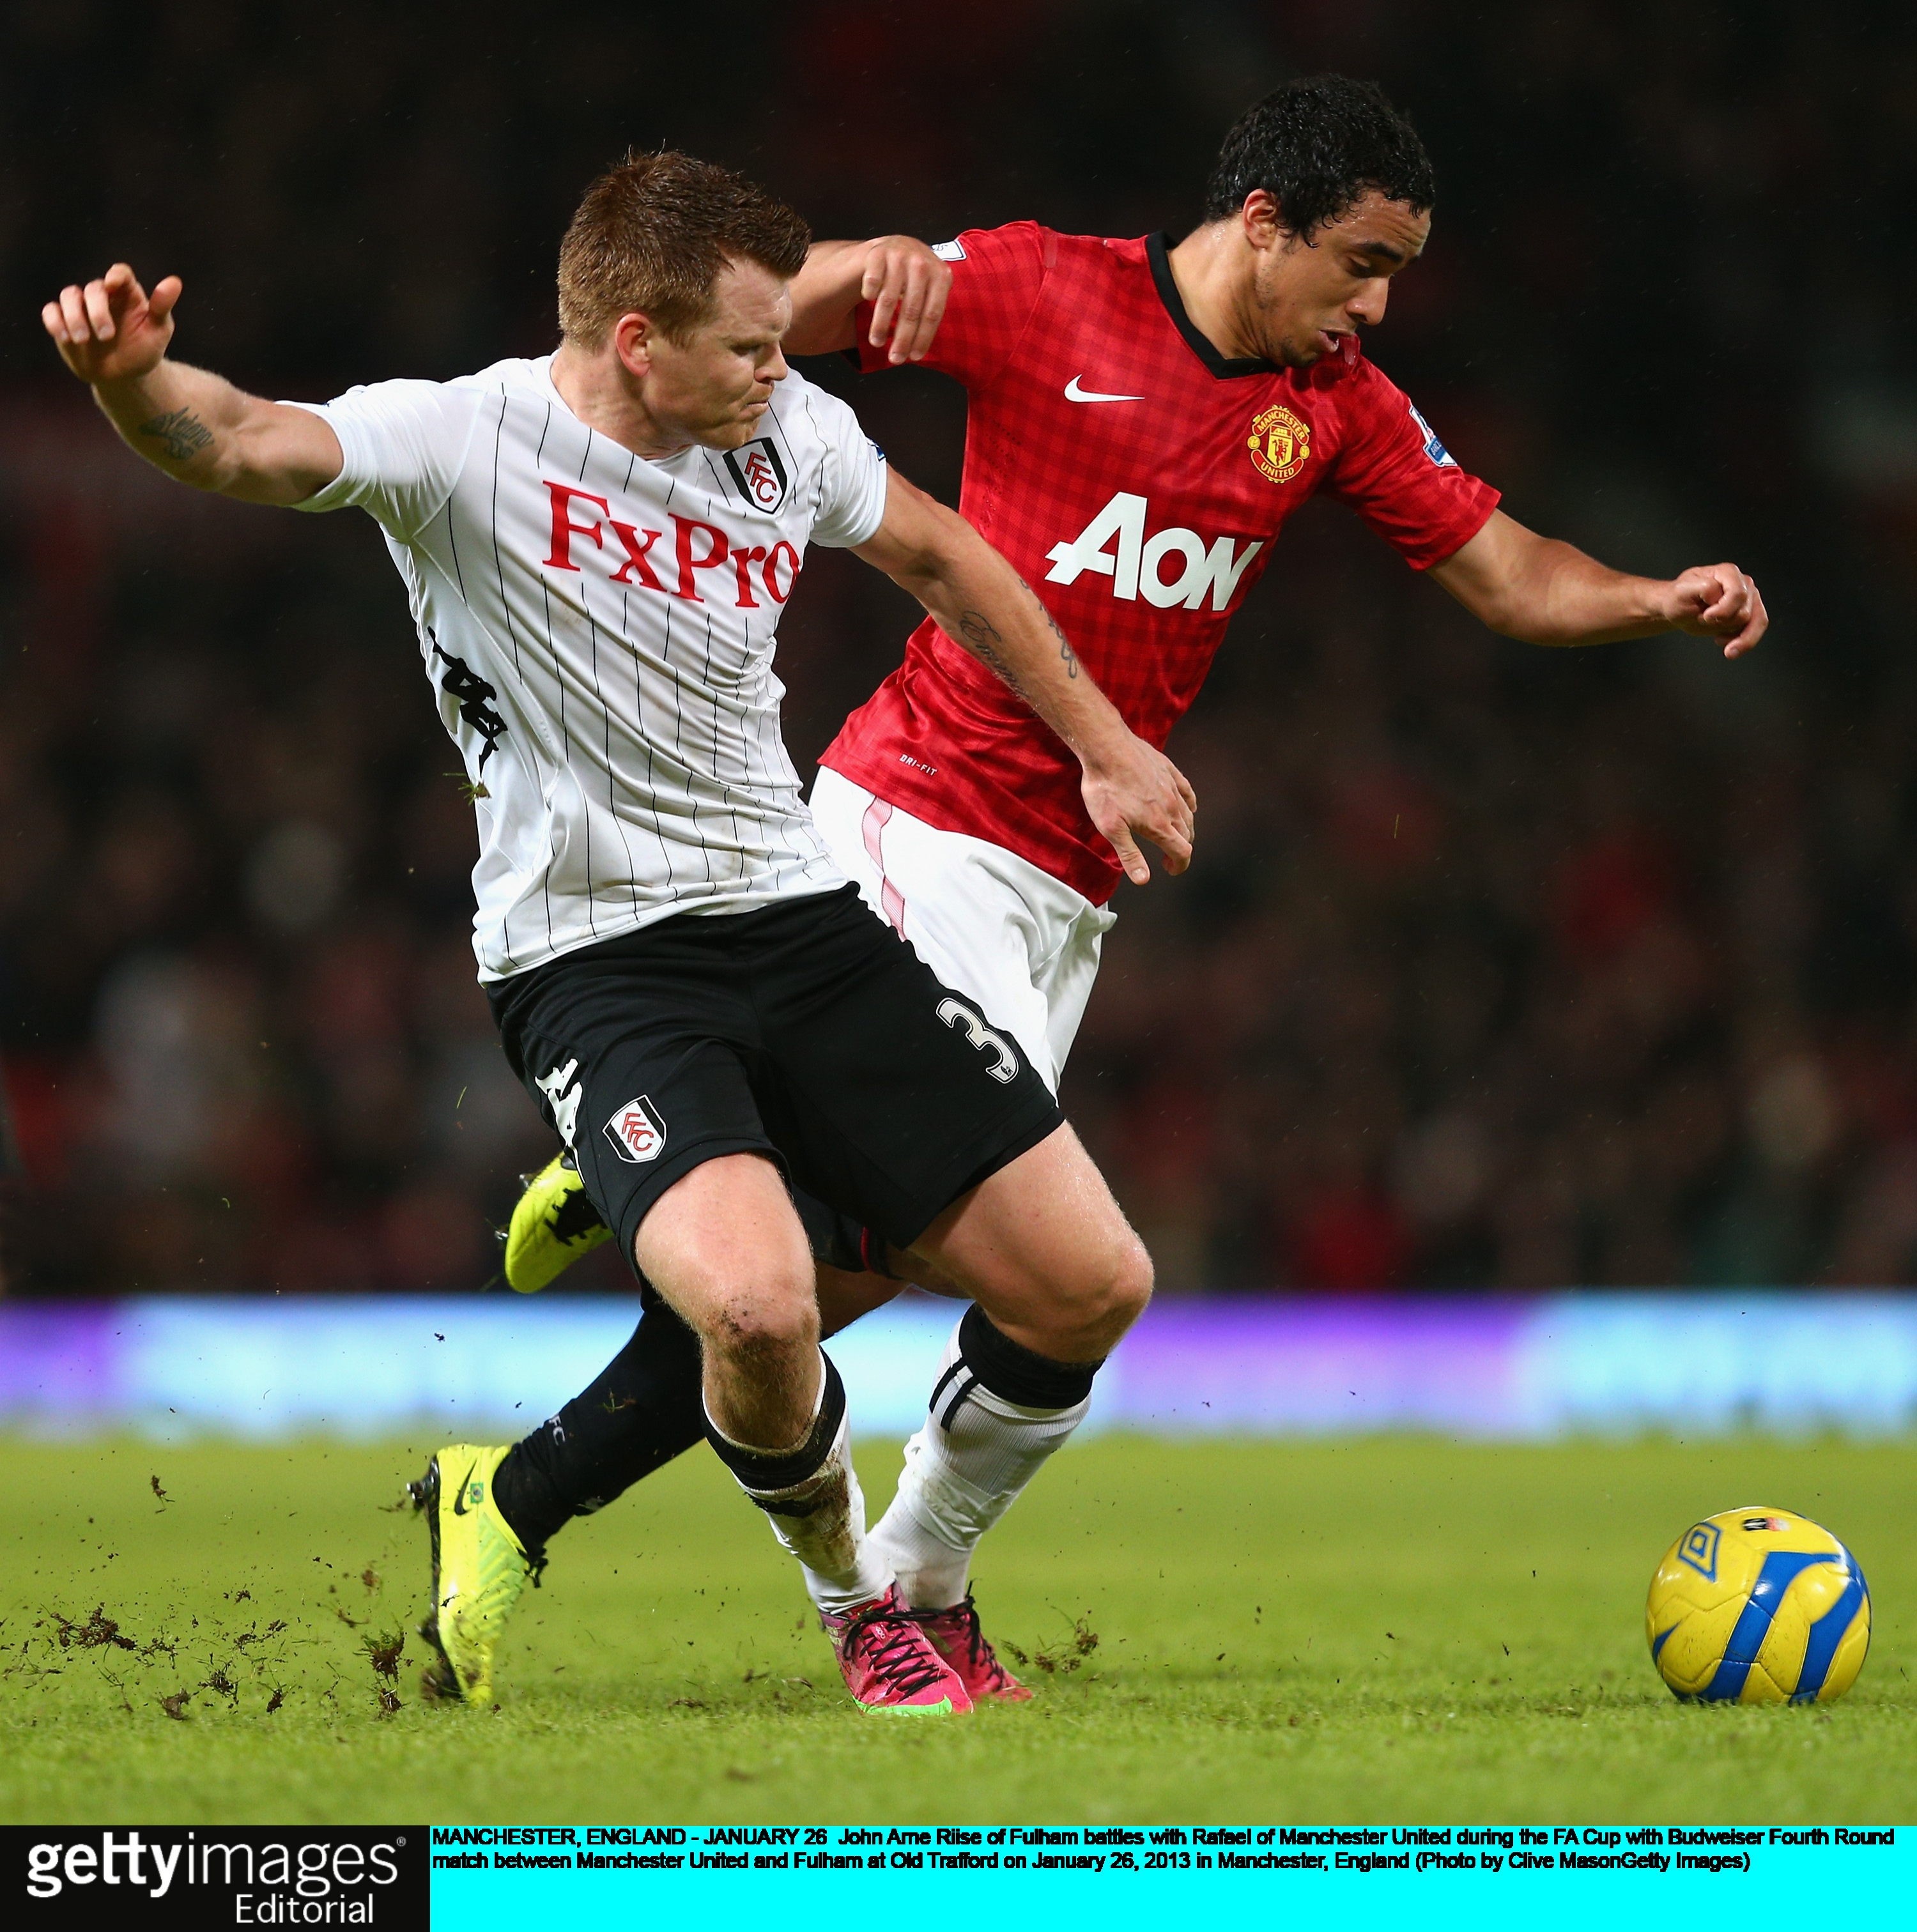 Gallery: Manchester United v Fulham – FA Cup – 26 January